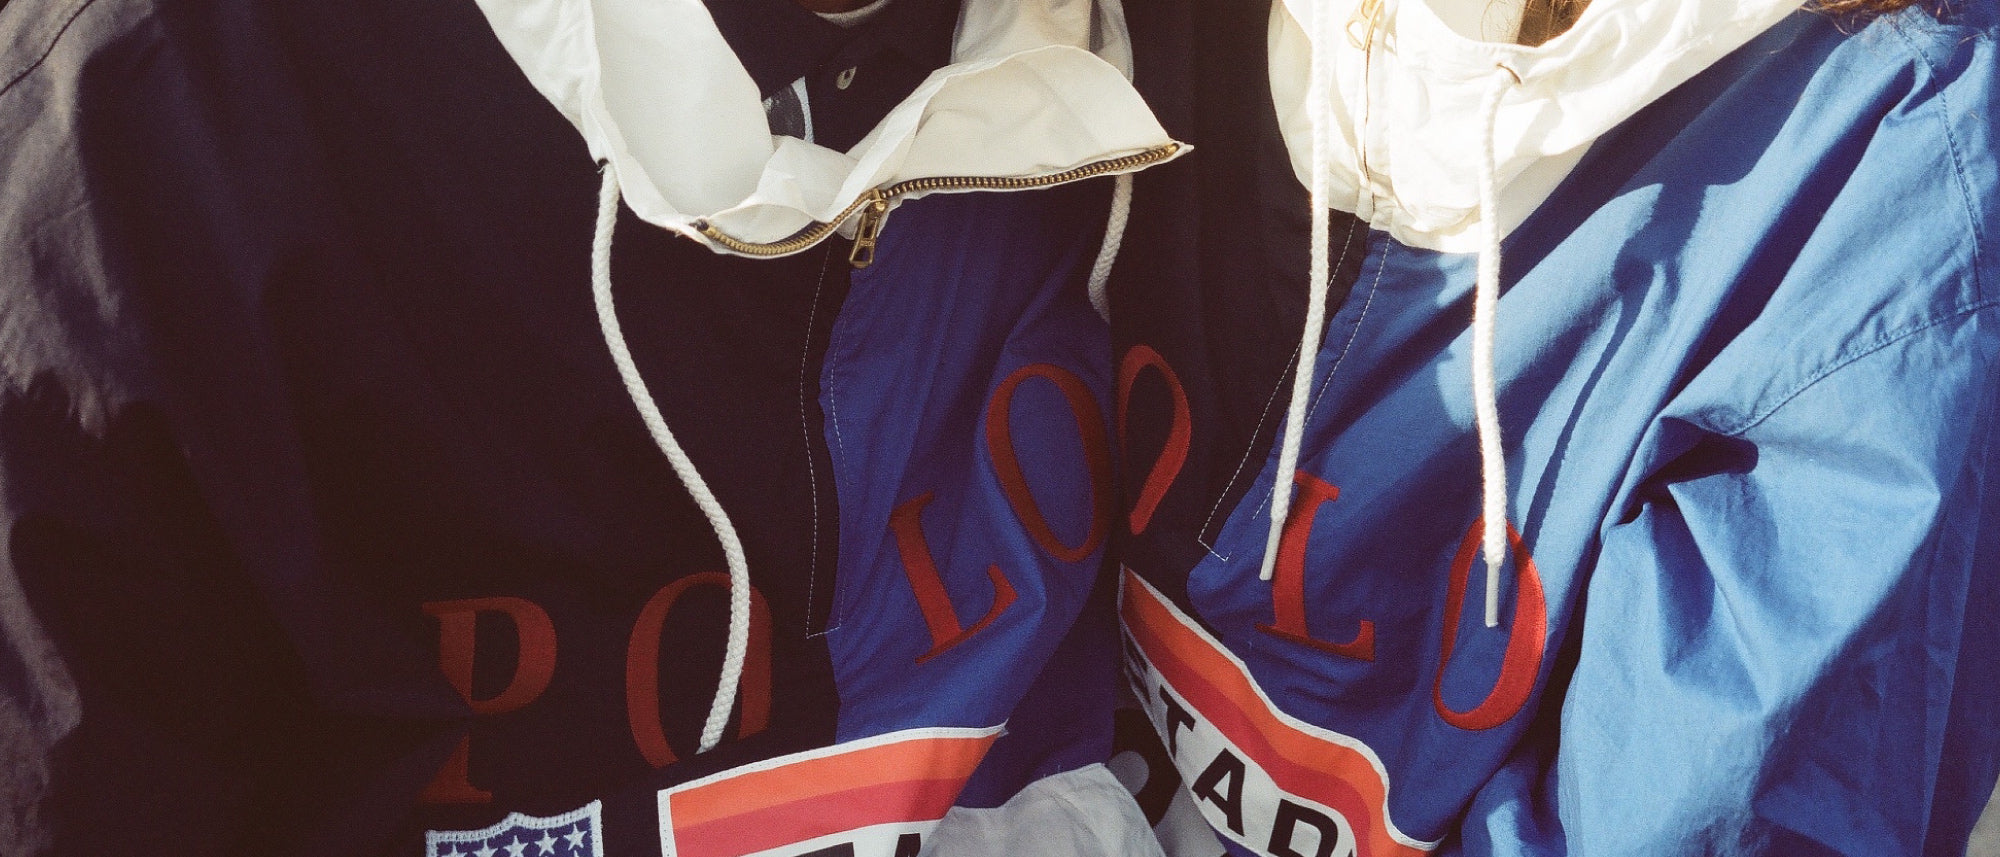 Series by Bodega: 1992 Polo Stadium Collection